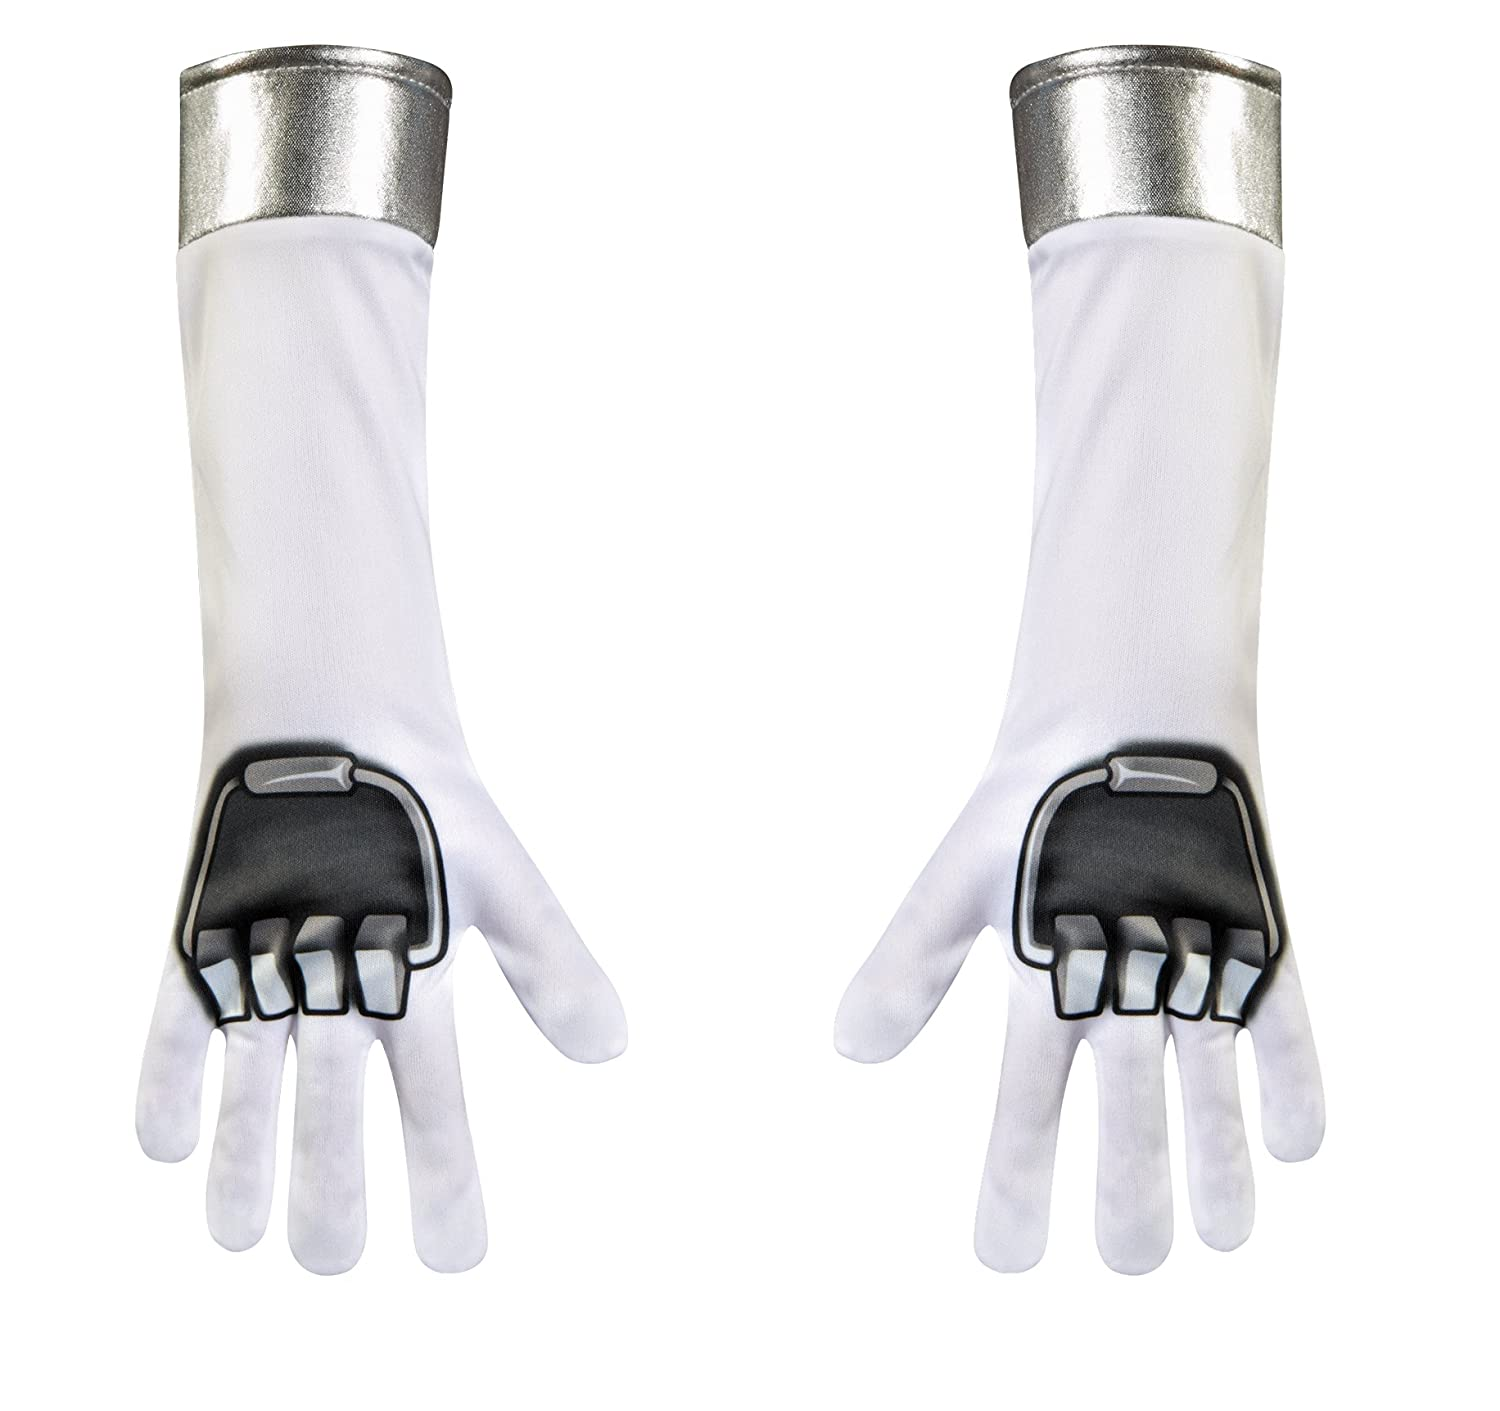 Black dress up gloves - Amazon Com Disguise Power Ranger Dino Charge Child Gloves Costume Toys Games